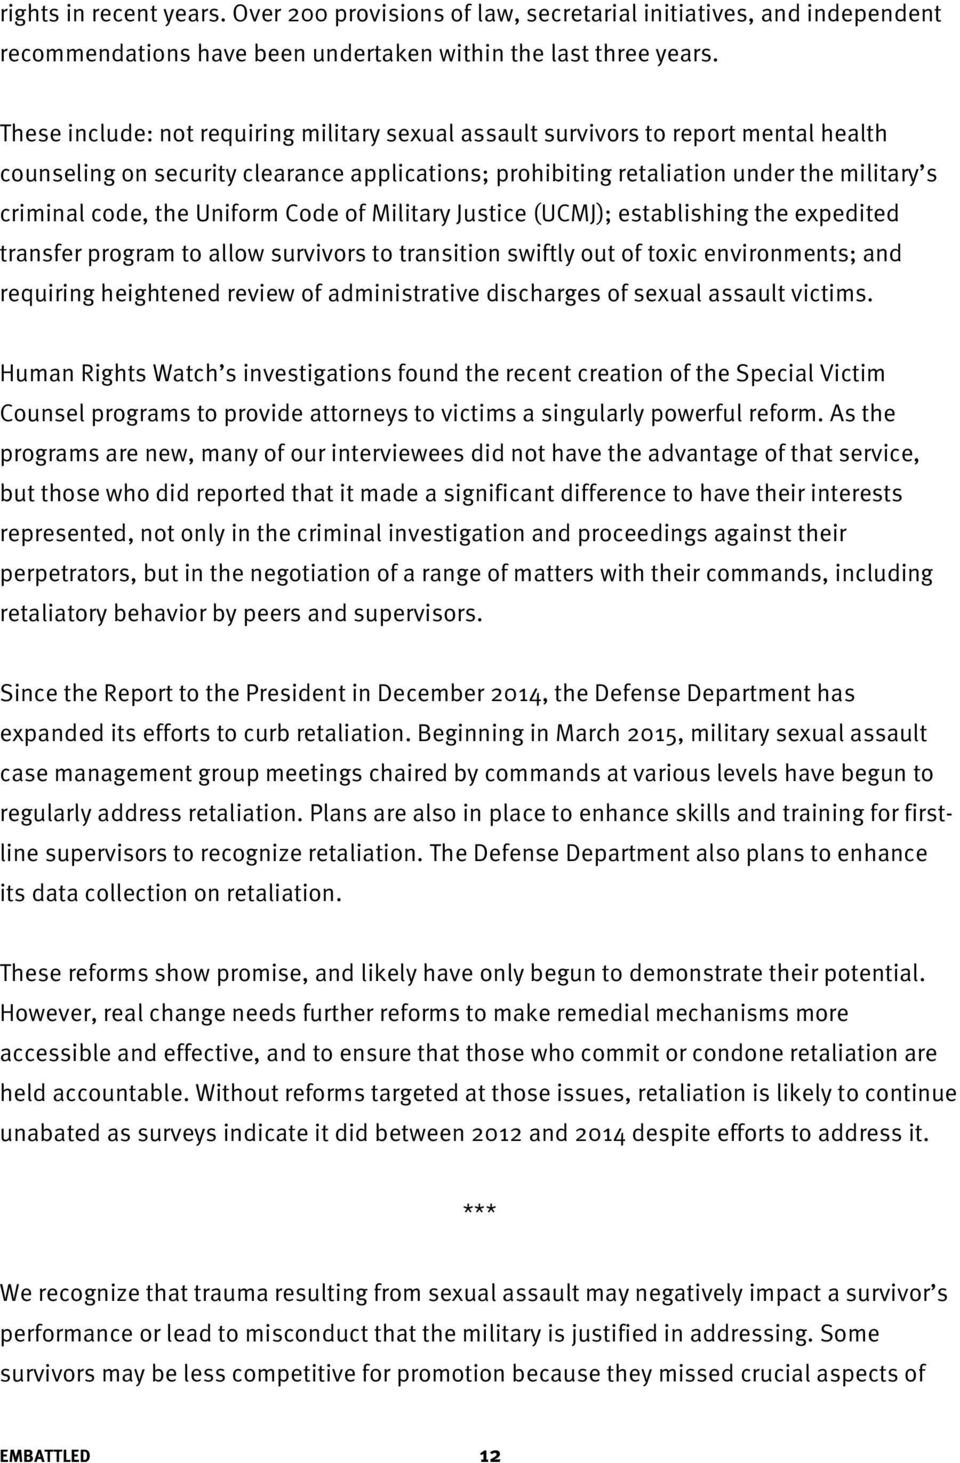 Uniform Code of Military Justice (UCMJ); establishing the expedited transfer program to allow survivors to transition swiftly out of toxic environments; and requiring heightened review of